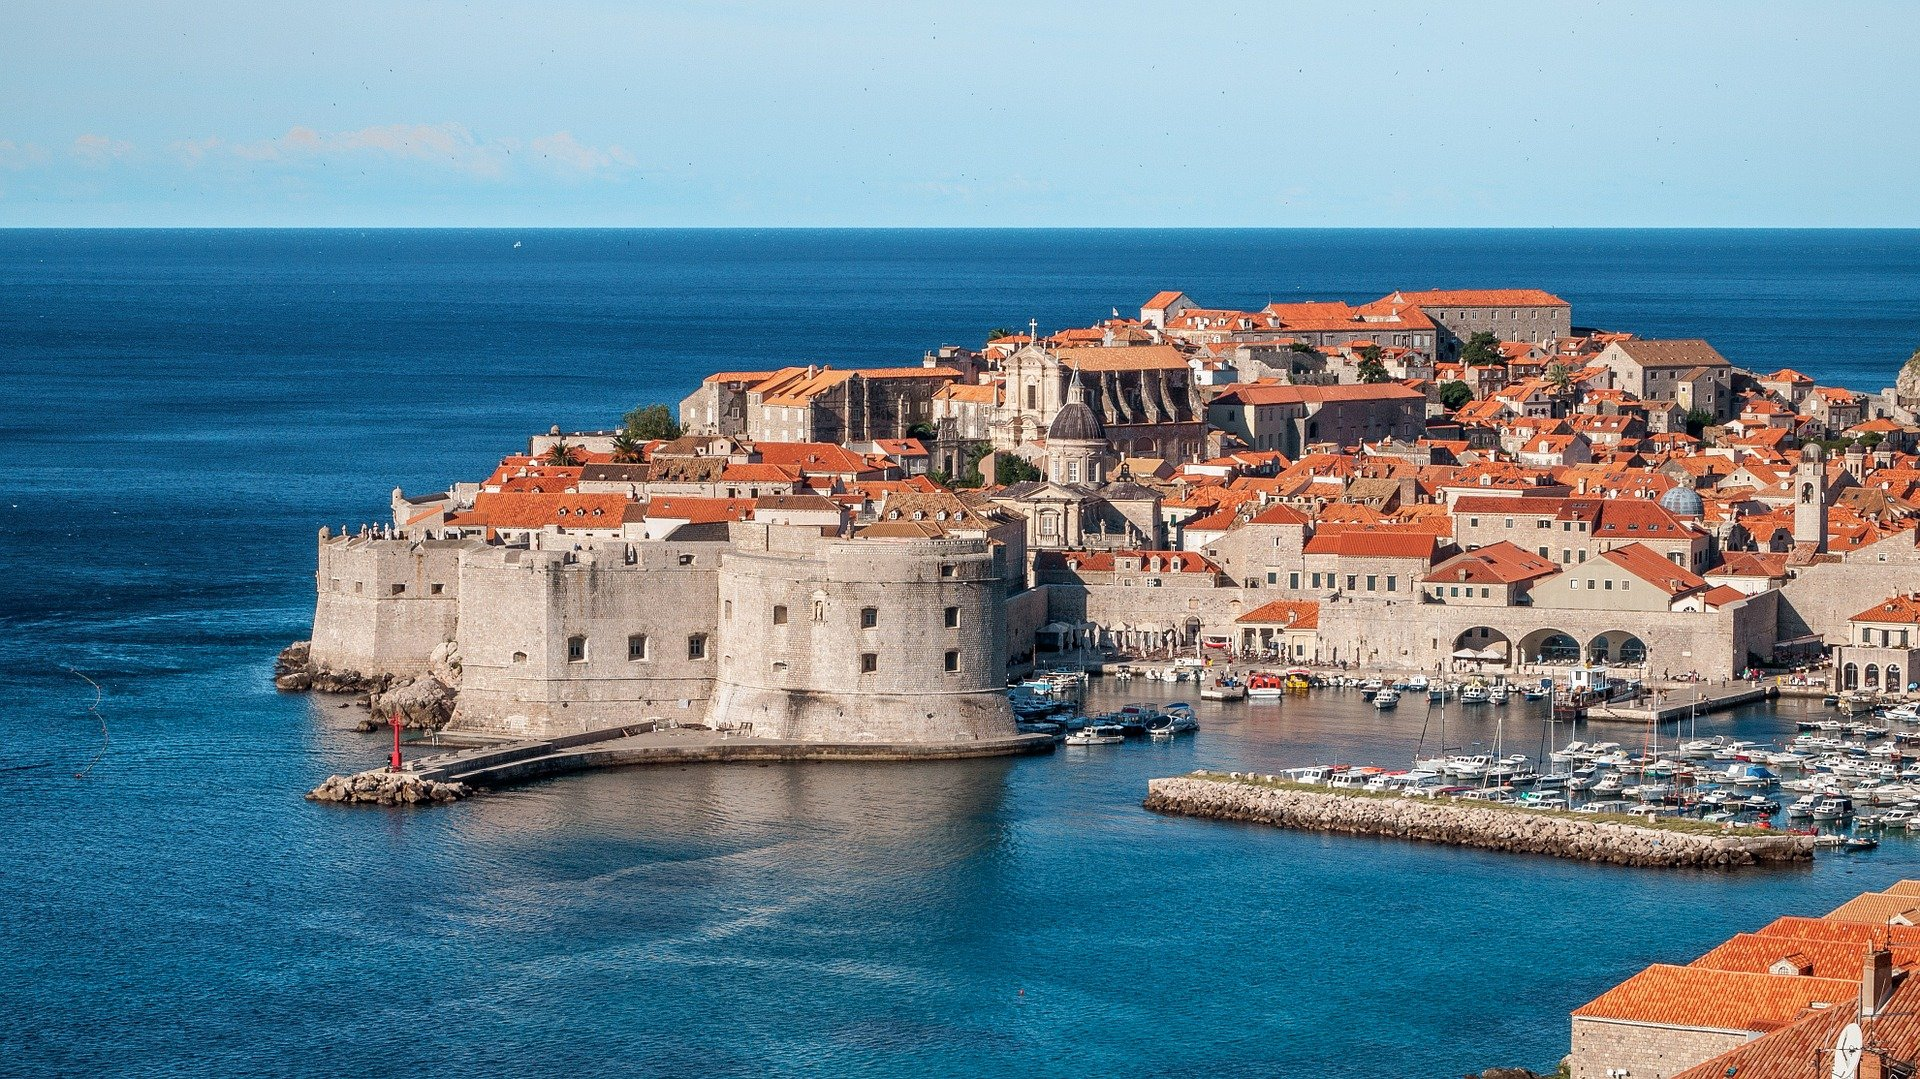 Main image of article: A holiday in Dubrovnik…